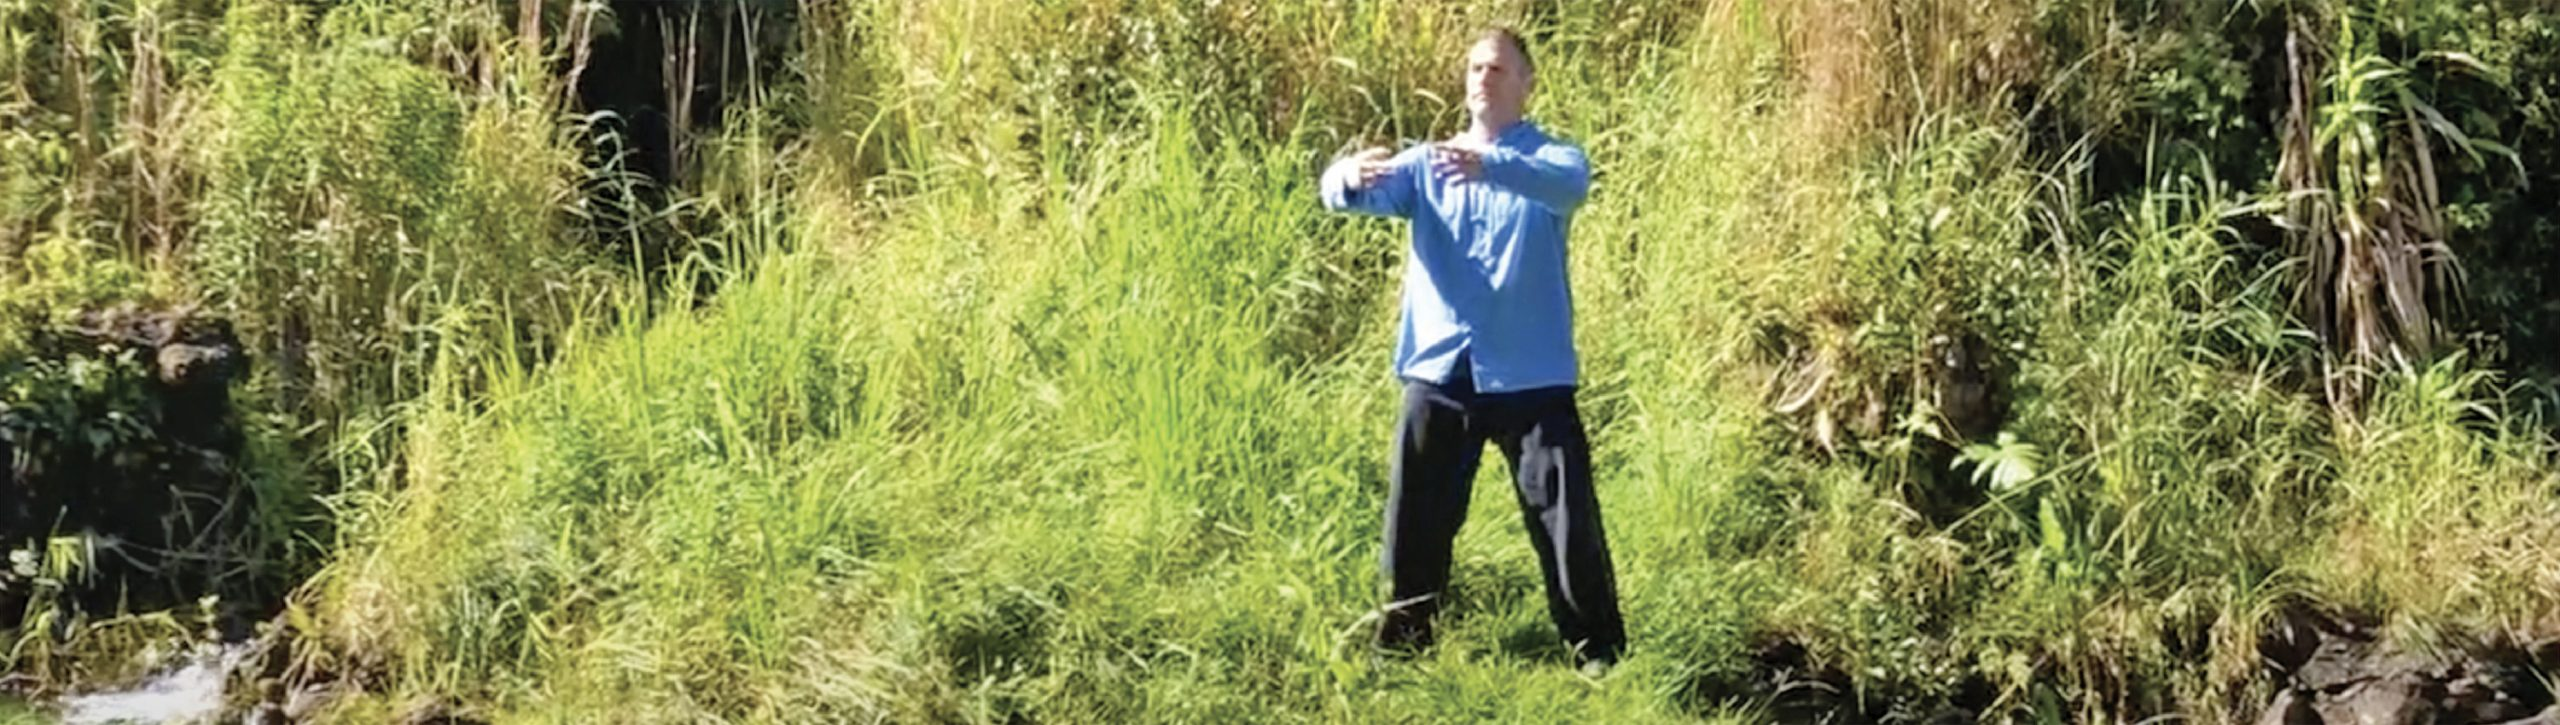 Qigong Rooted Posture Brings Energy and Peace...